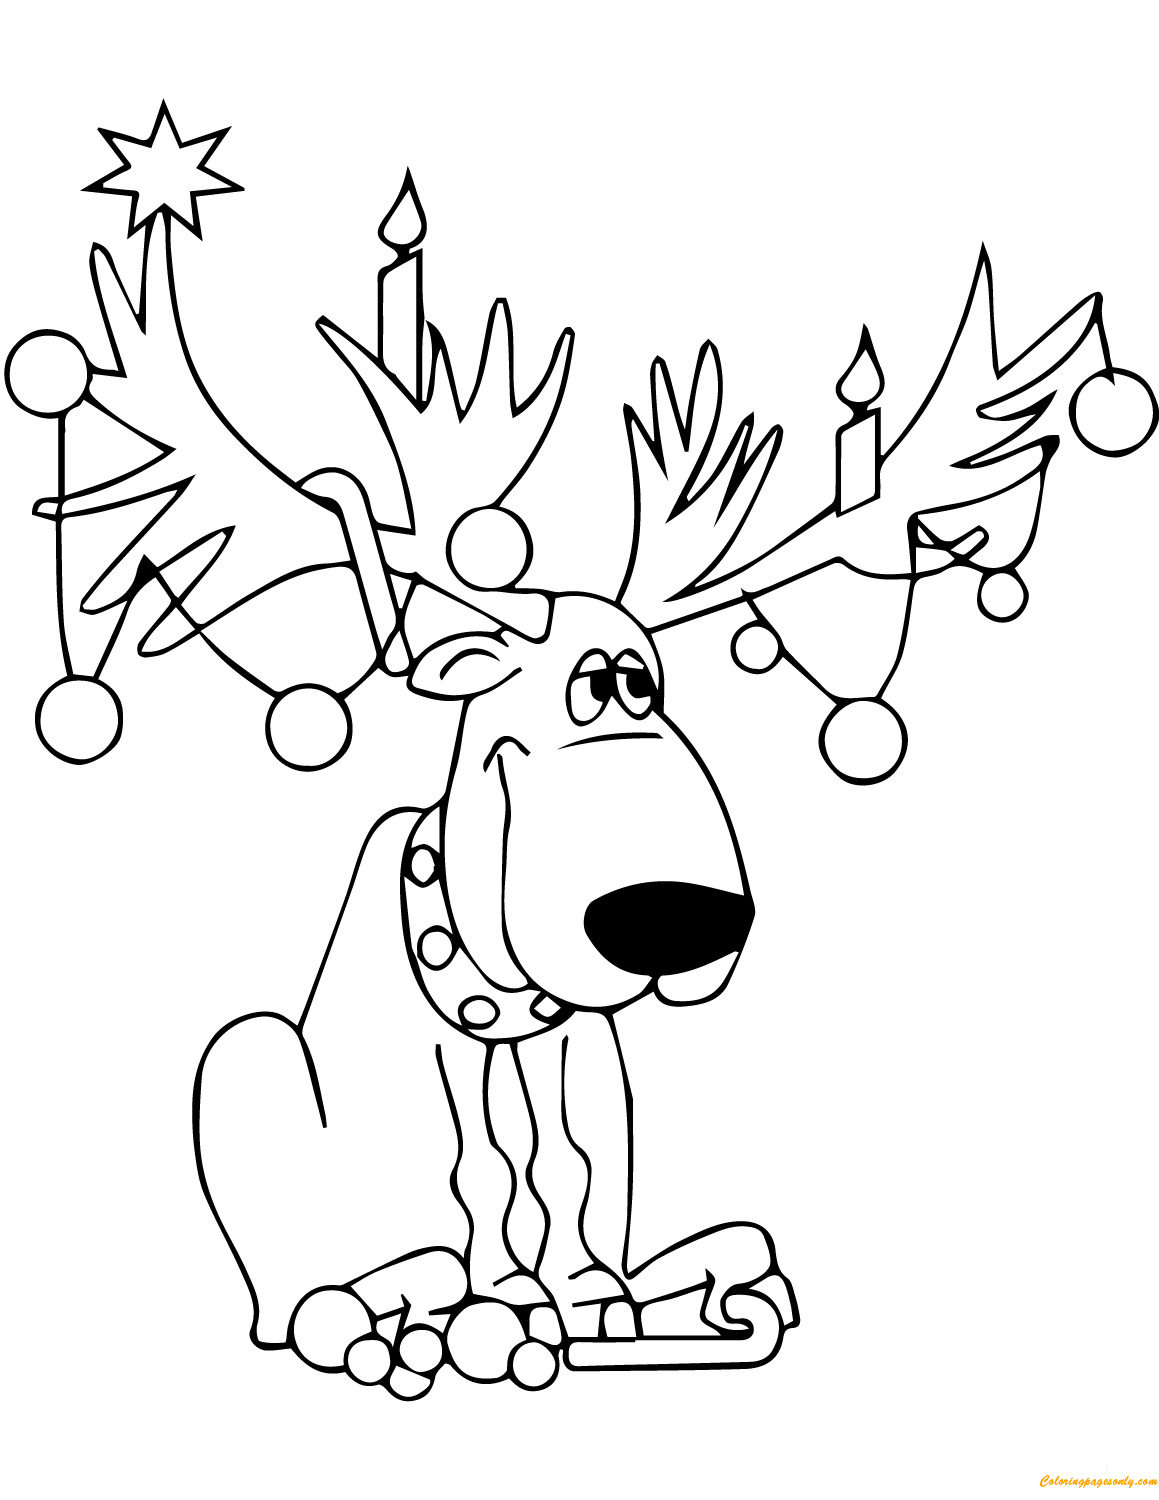 Christmas Reindeer Lights Coloring Page - Free Coloring ...